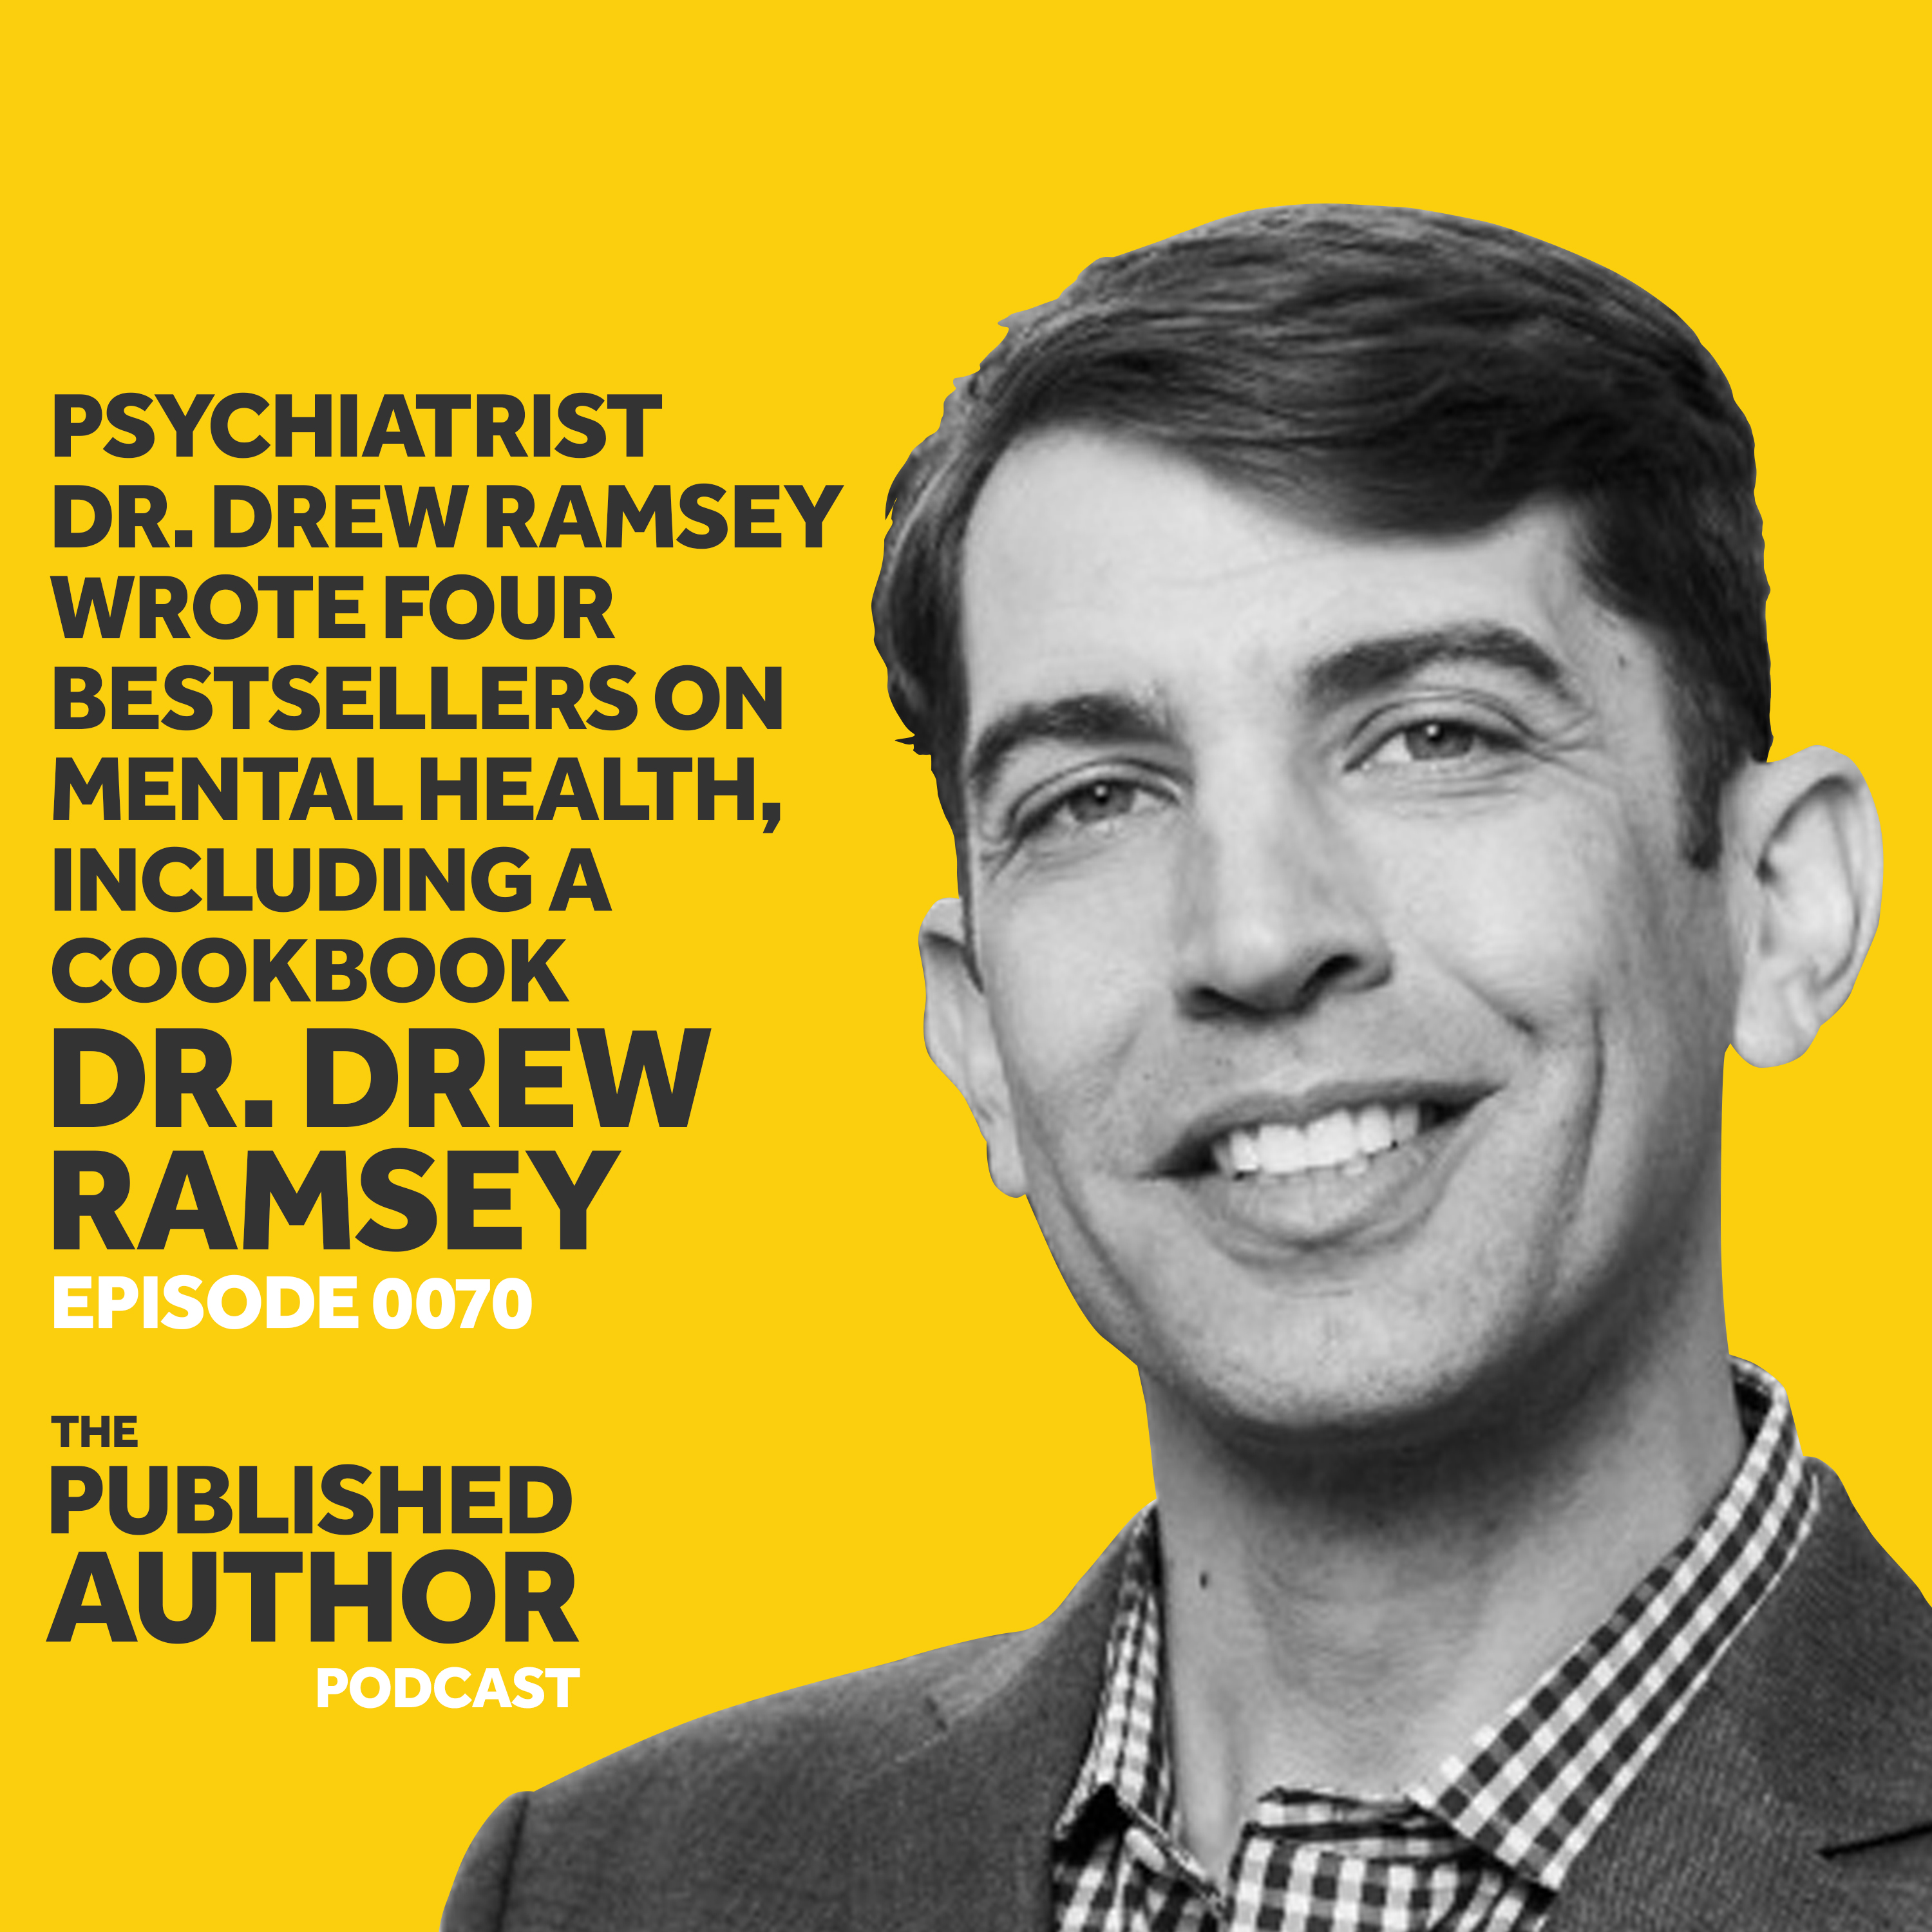 Psychiatrist Dr. Drew Ramsey Wrote Four Bestsellers On Mental Health, Including A Cookbook